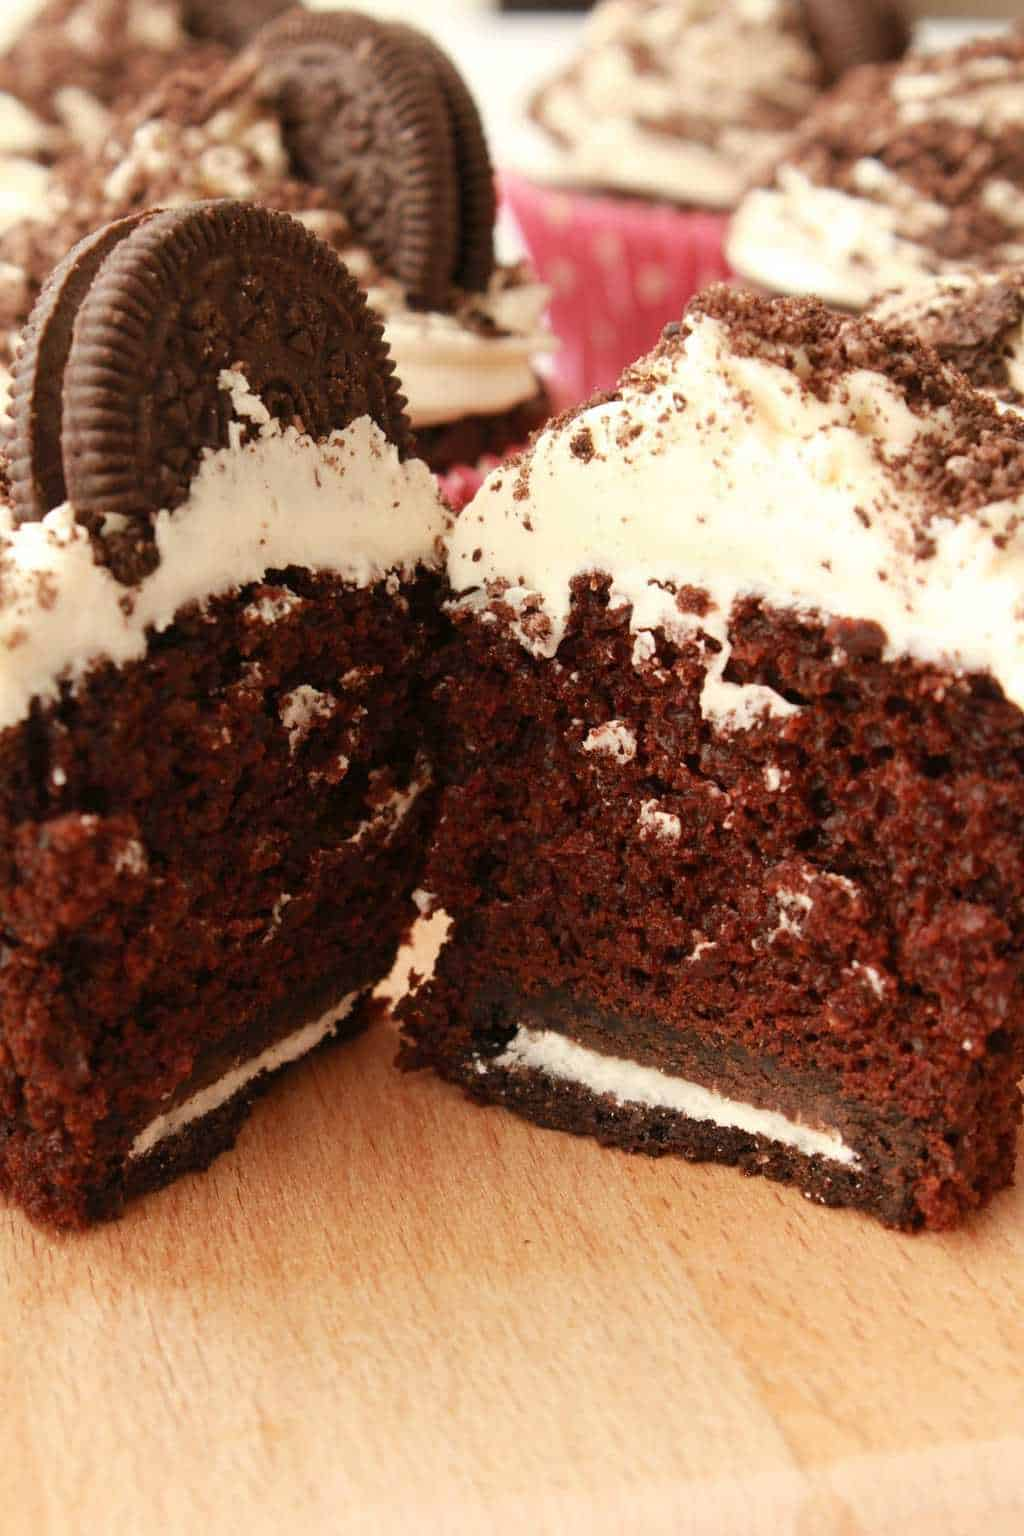 Rich and moist vegan oreo cupcakes with vanilla frosting, oreo sprinkles and an entire oreo cookie baked into the base! #vegan #lovingitvegan #oreocupcakes #cupcakes #dessert